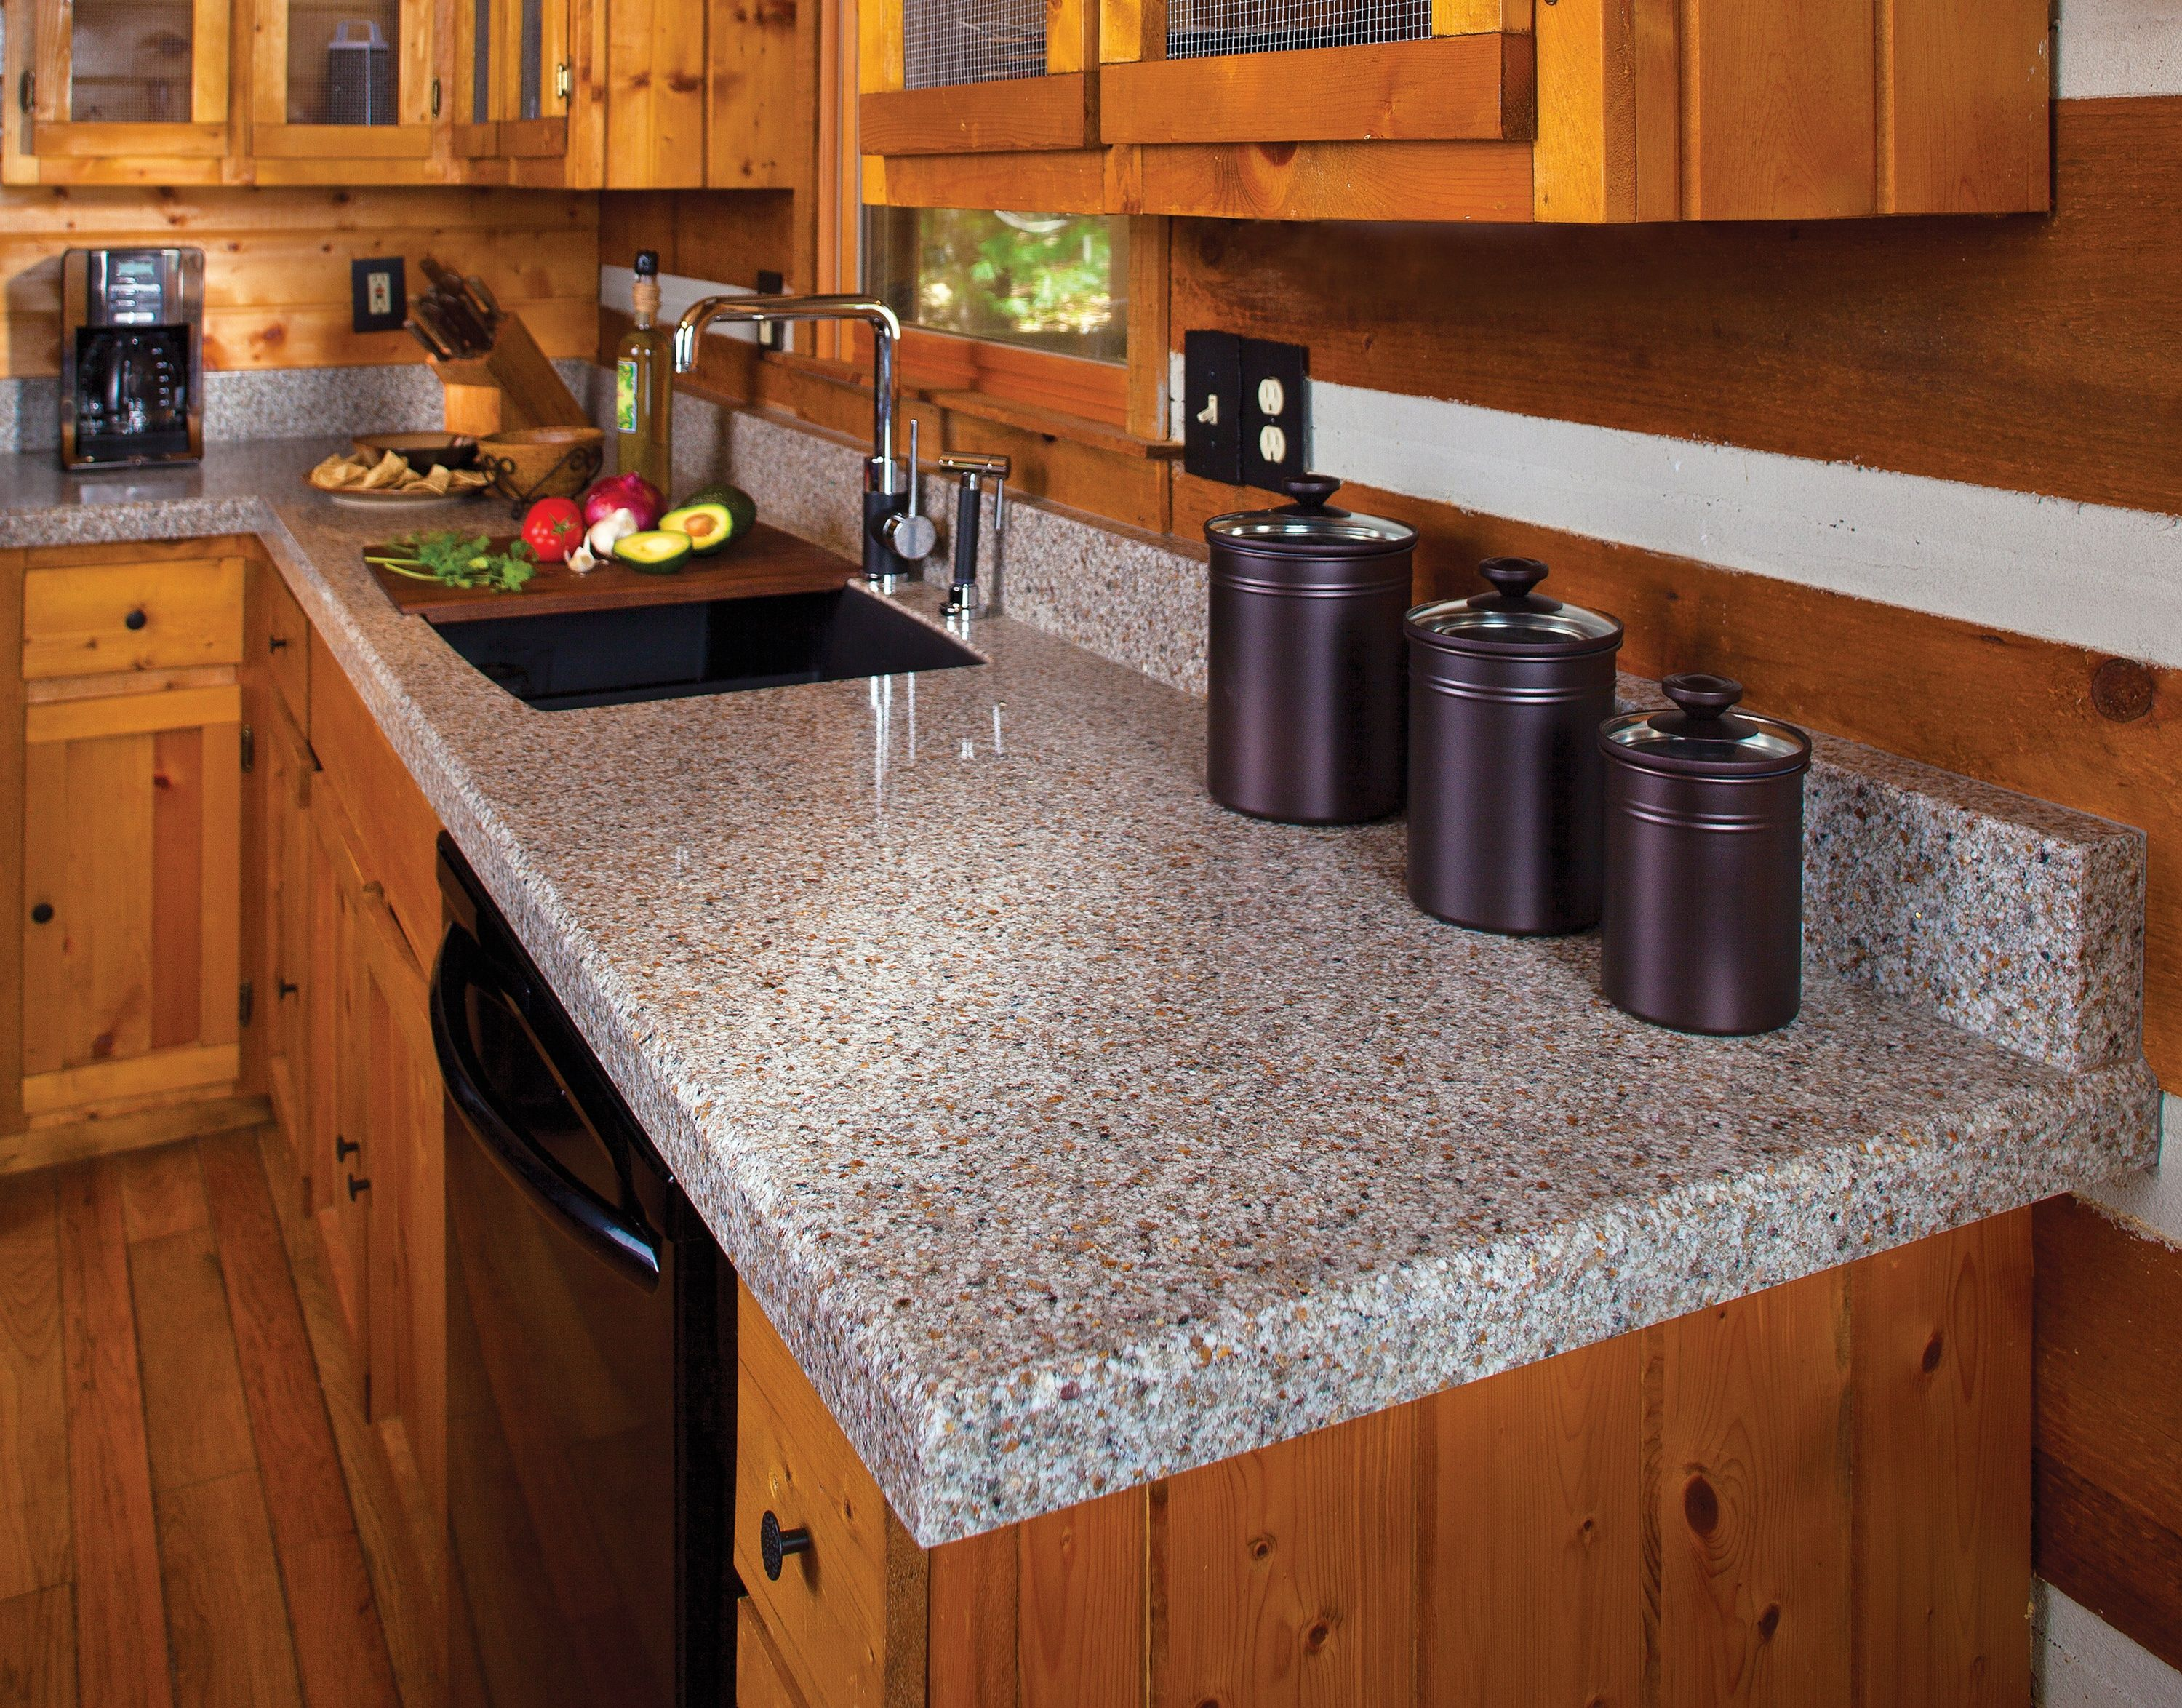 S U0026 D Has Skilled Technicians And Expert Designers To Design Worktops For  Your Kitchen And. Countertops ...